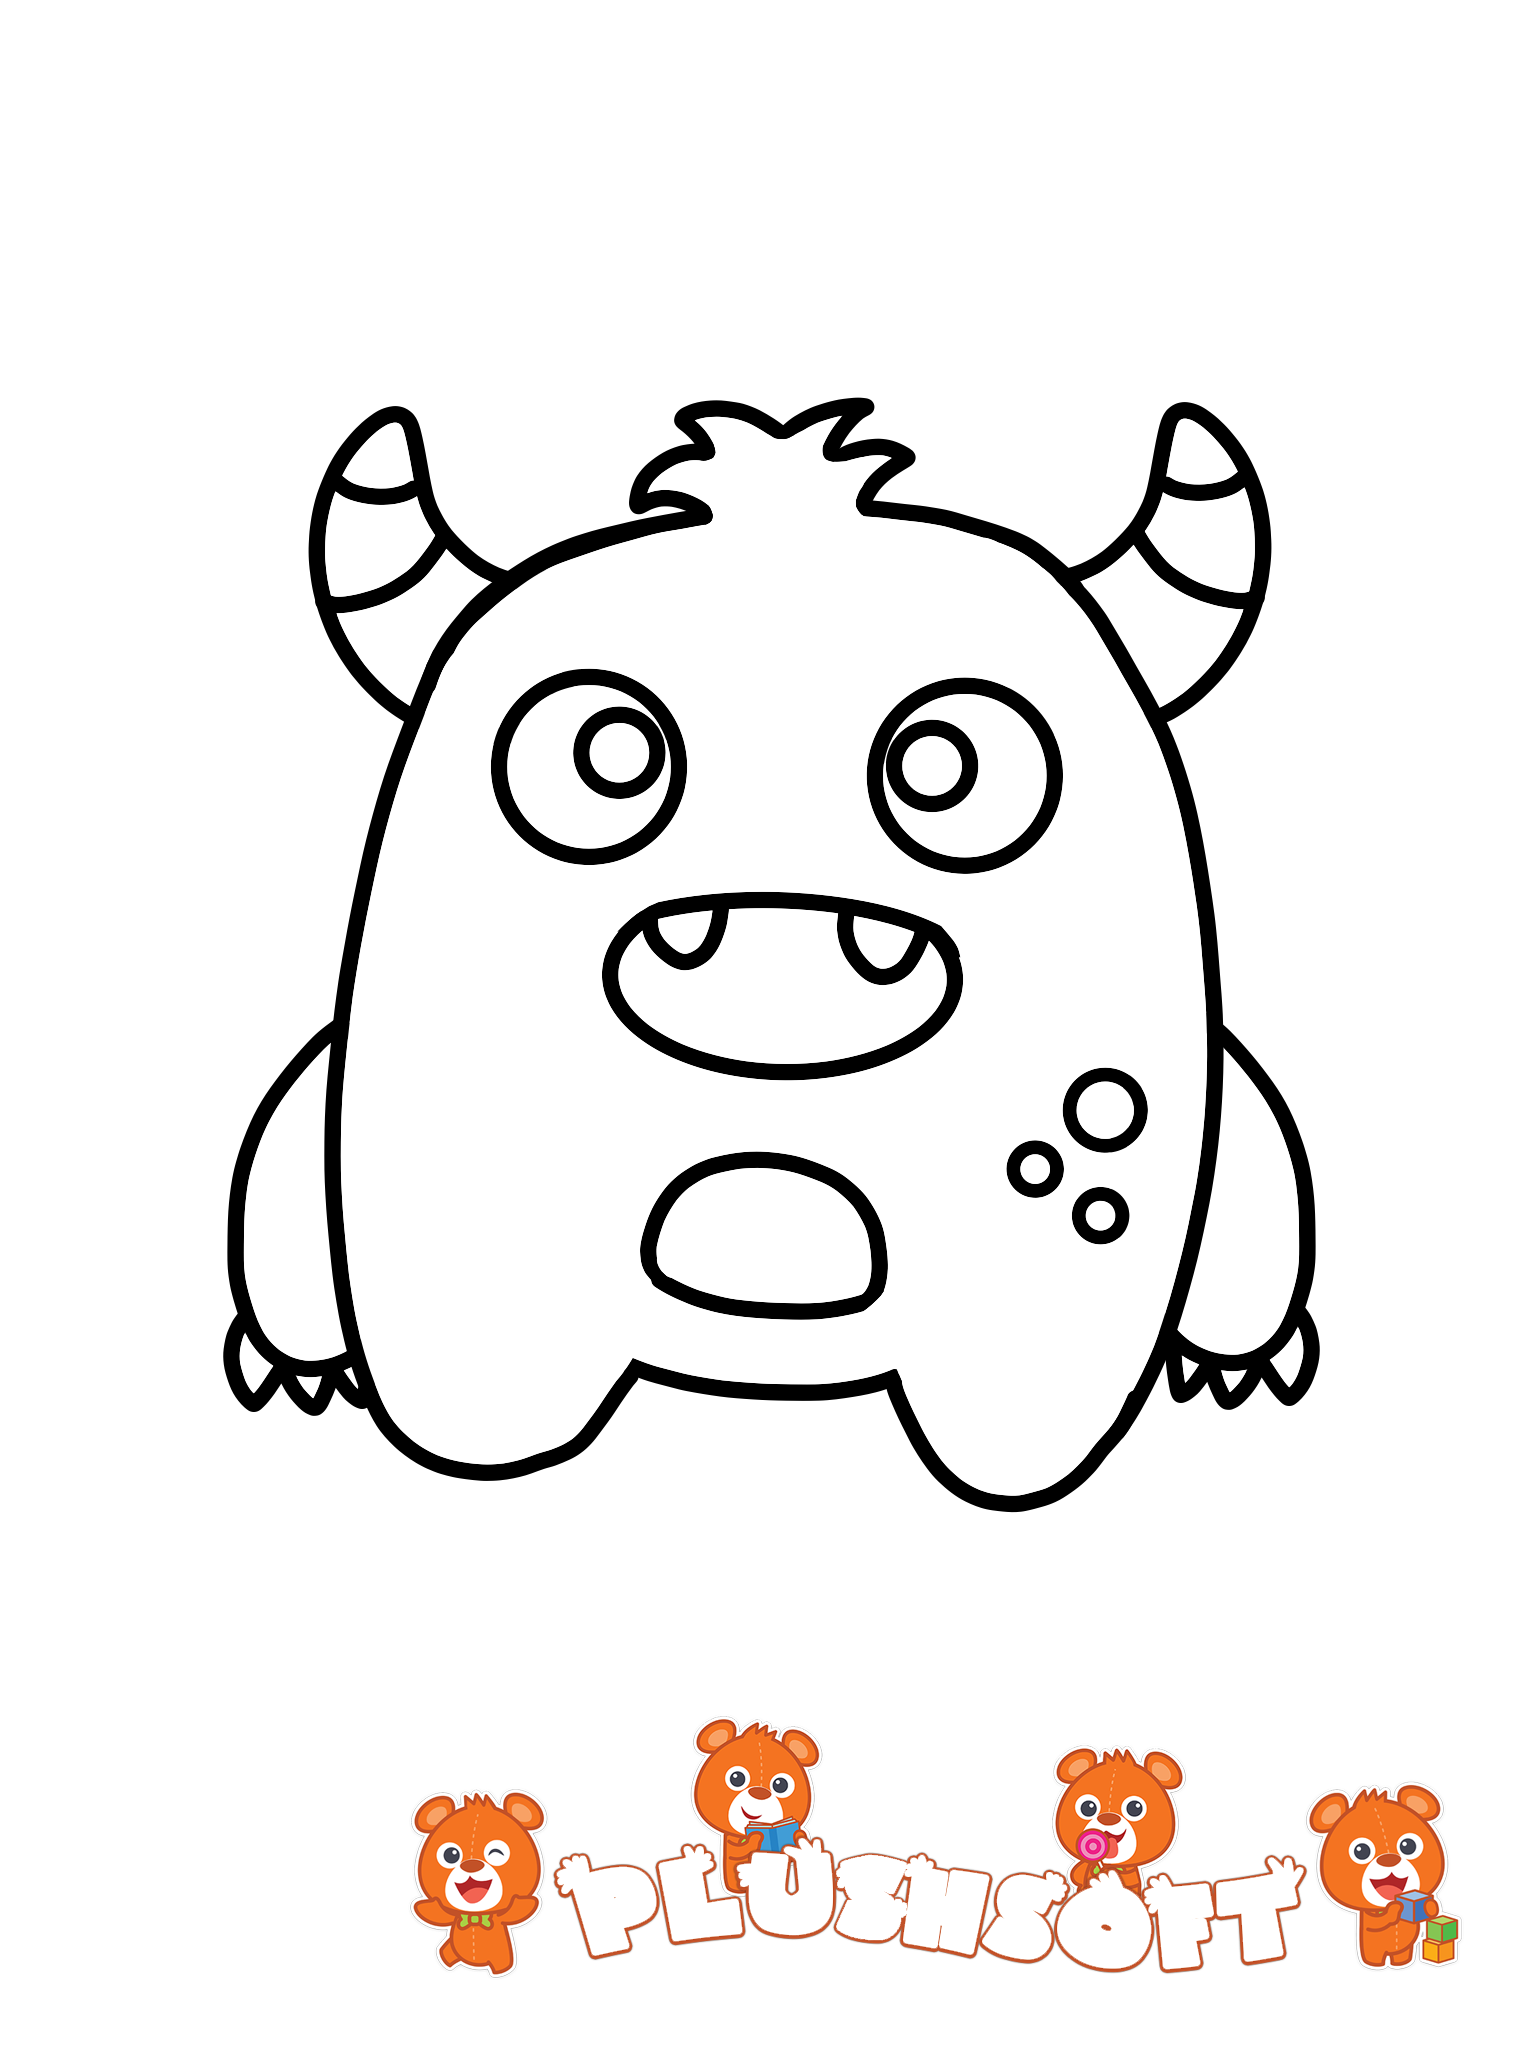 free printable coloring page - a cute monster for your